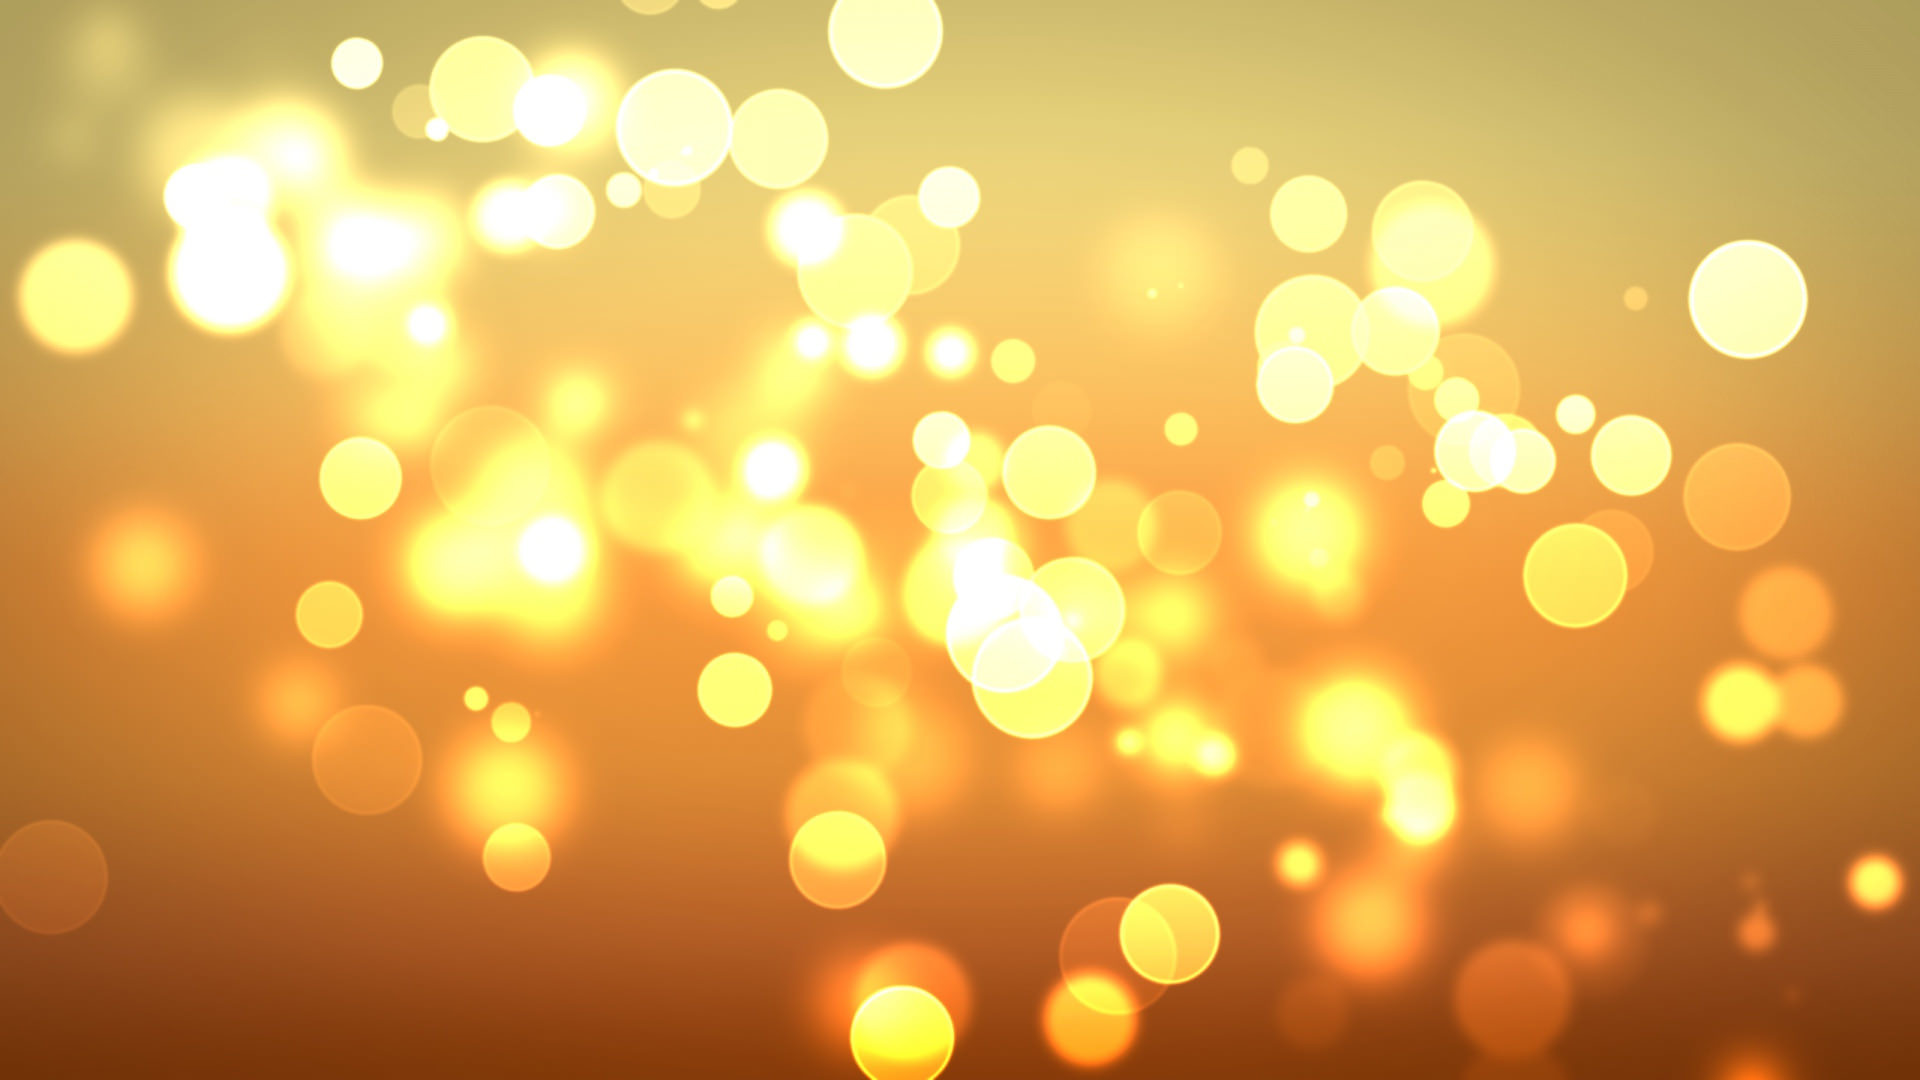 Light yellow background wallpaper yellow sparkles background html code –  Solar Lights Bright Background